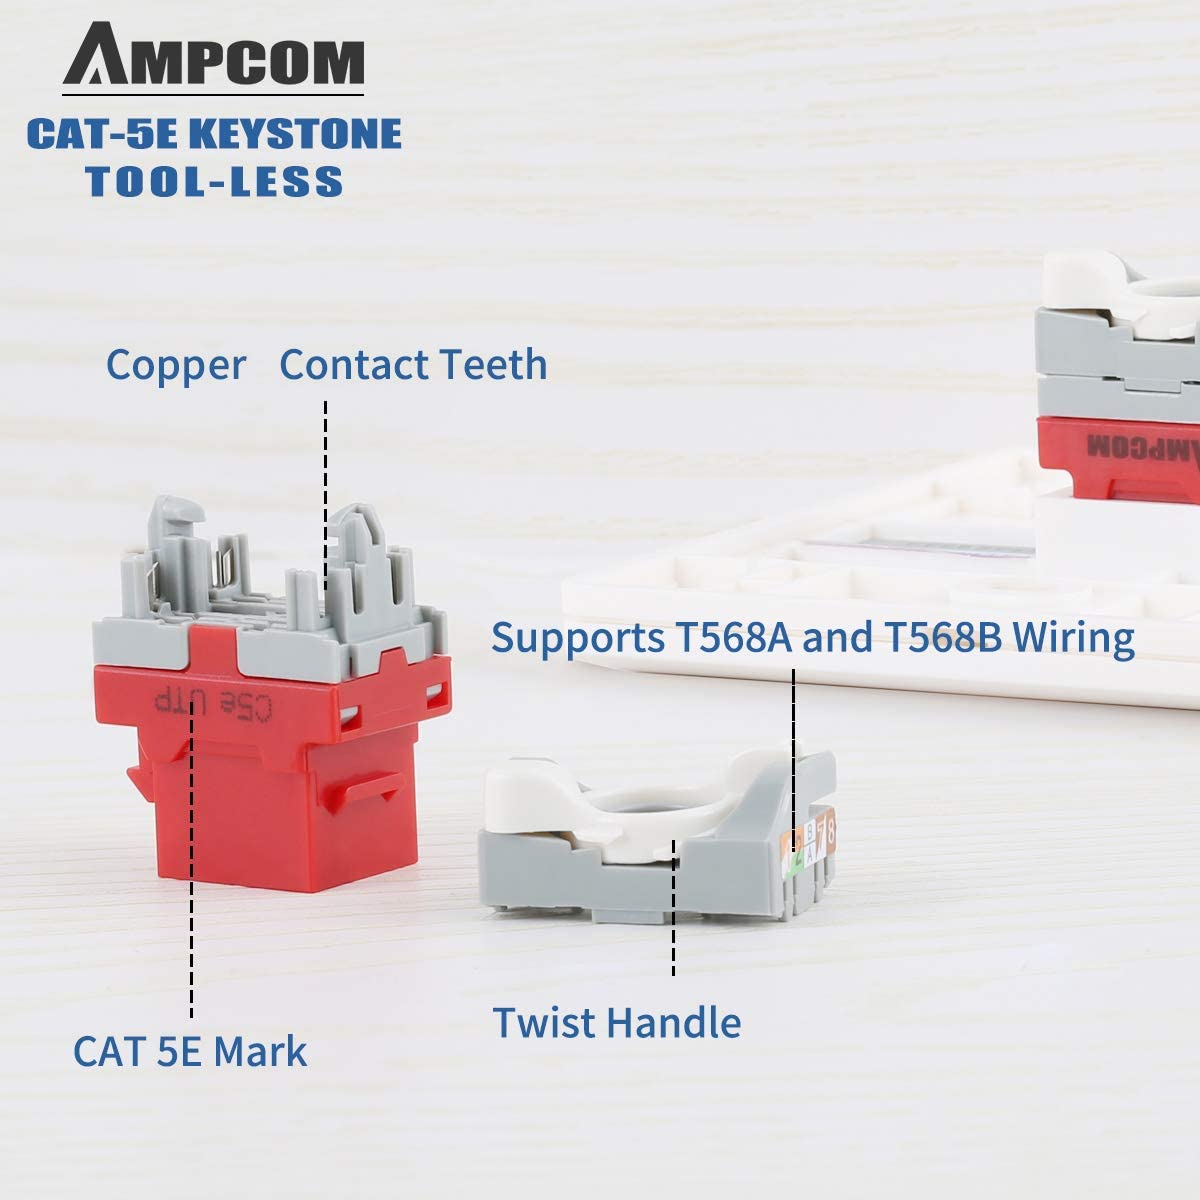 No Punch Down Tool Required UTP Module Connector White AMPCOM 10-Pack CAT5e RJ45 Tool-Less Keystone Jack